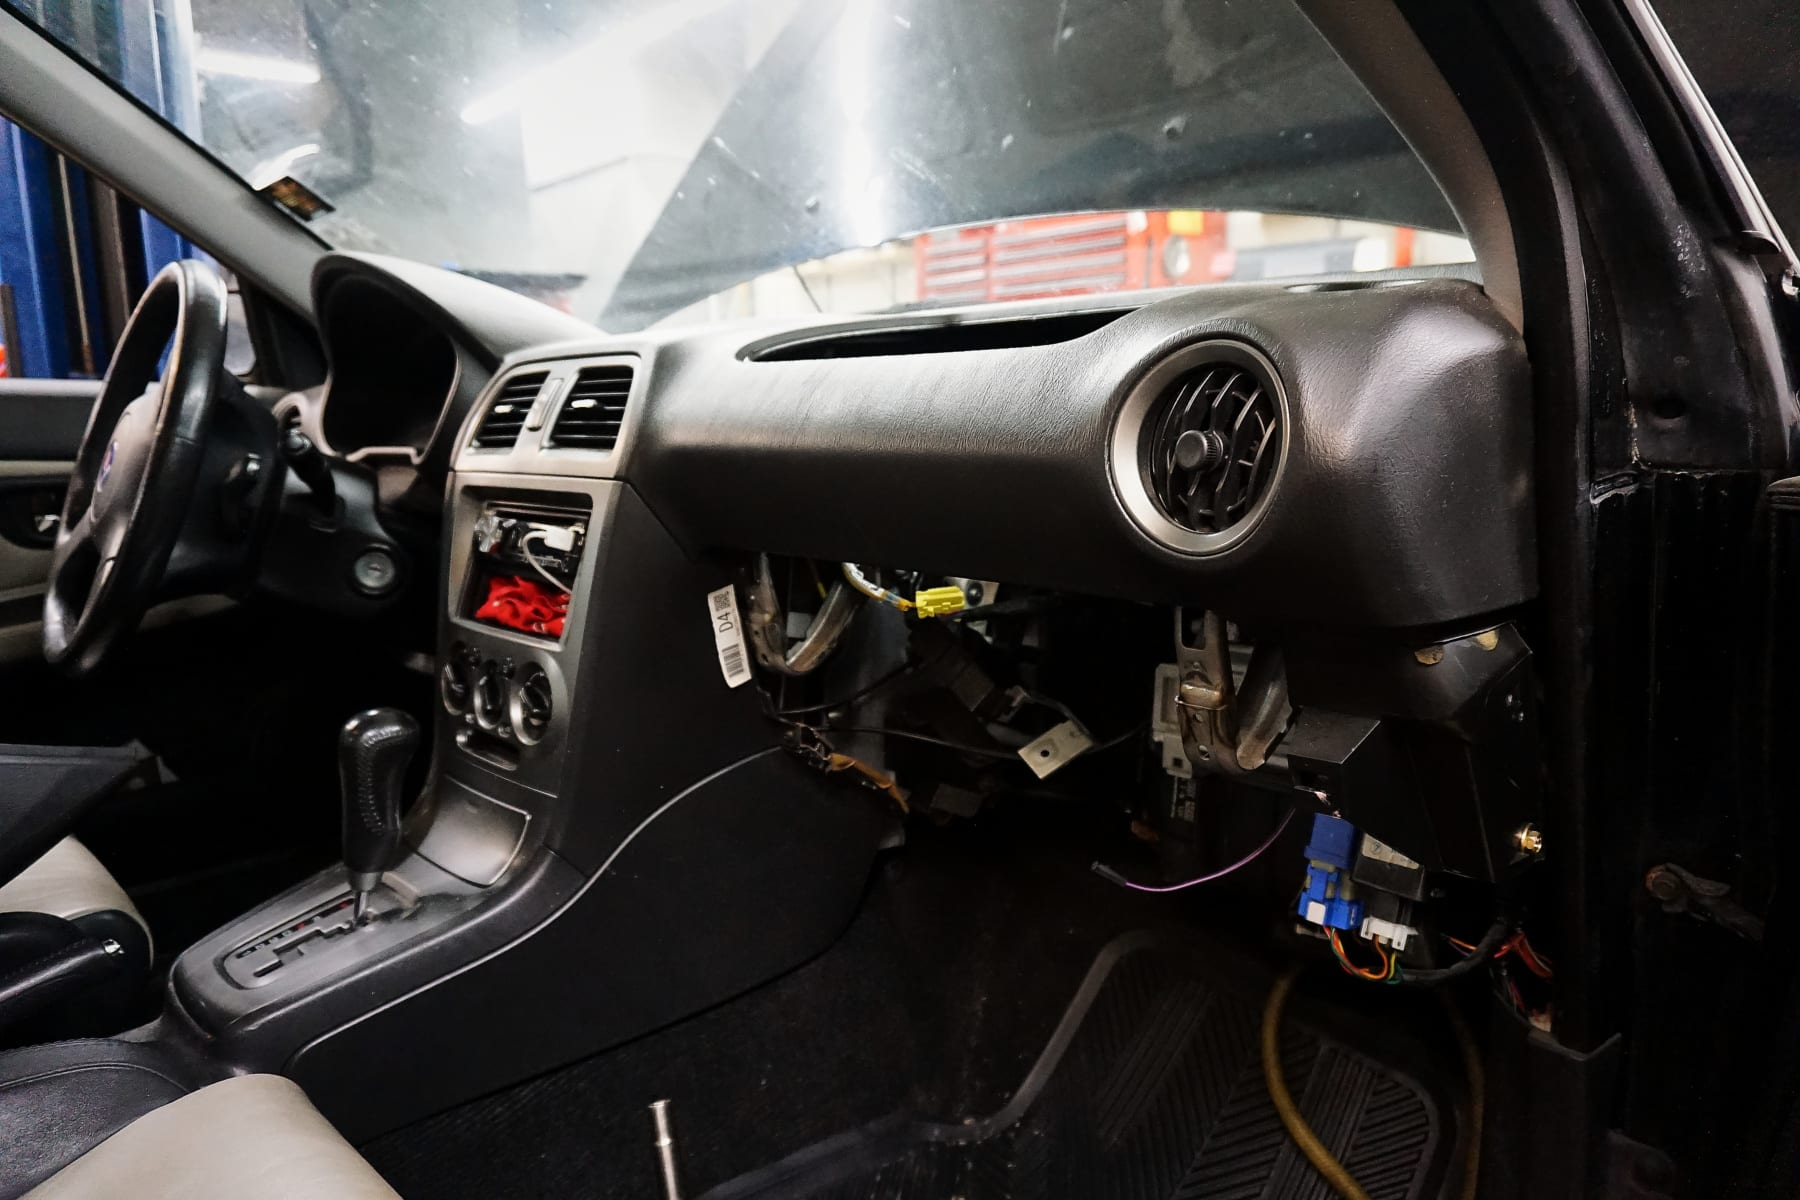 The dashboard in surgery to remove the recalled Takata airbag